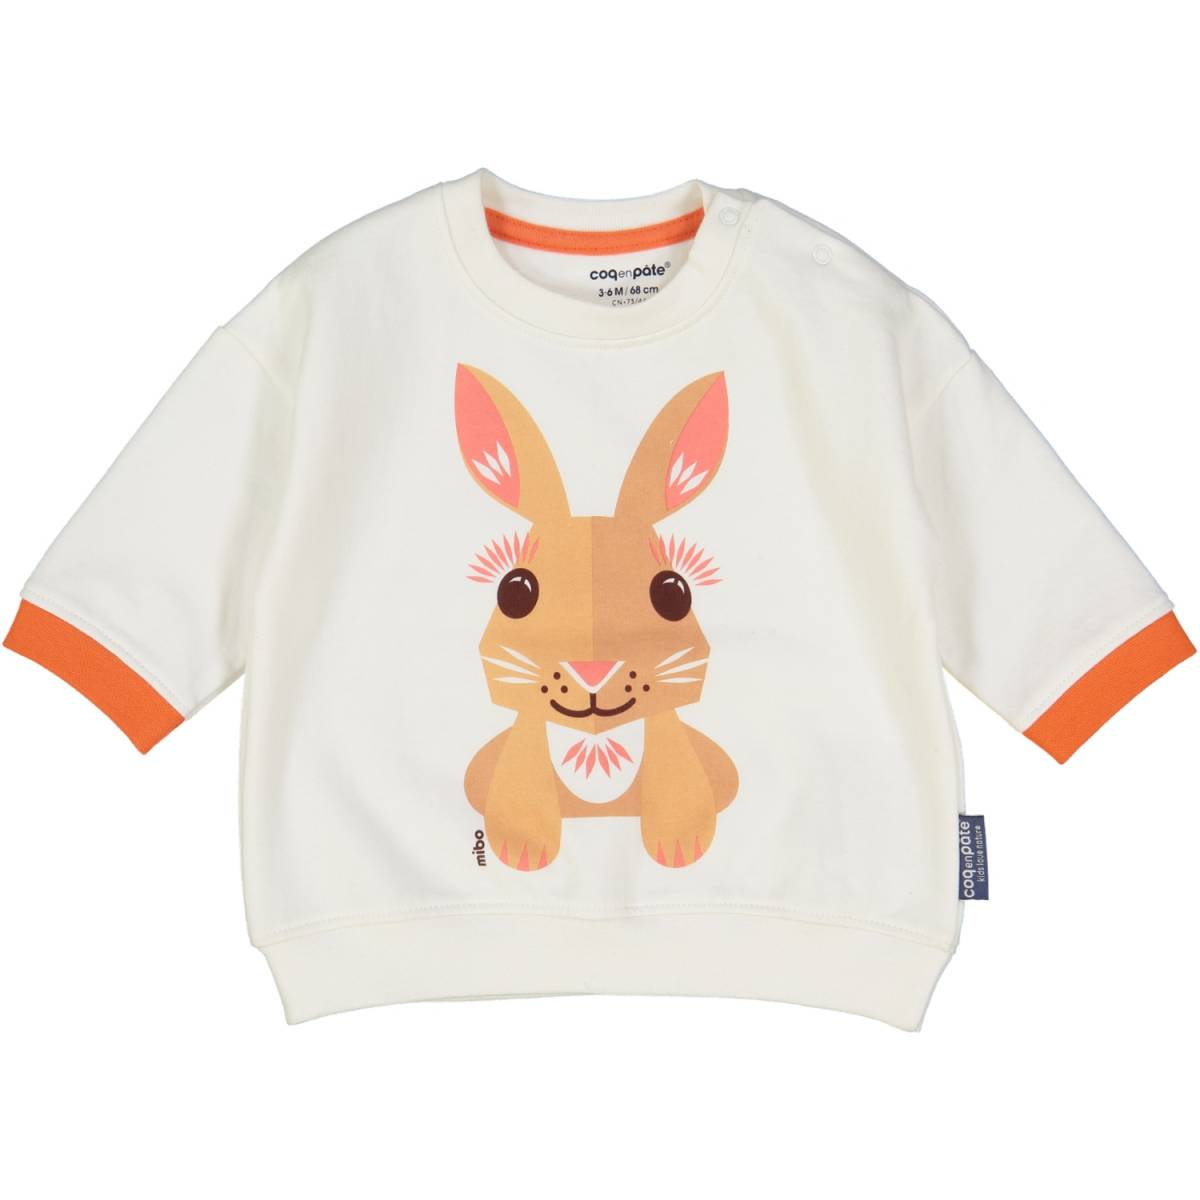 Rabbit sweatshirt